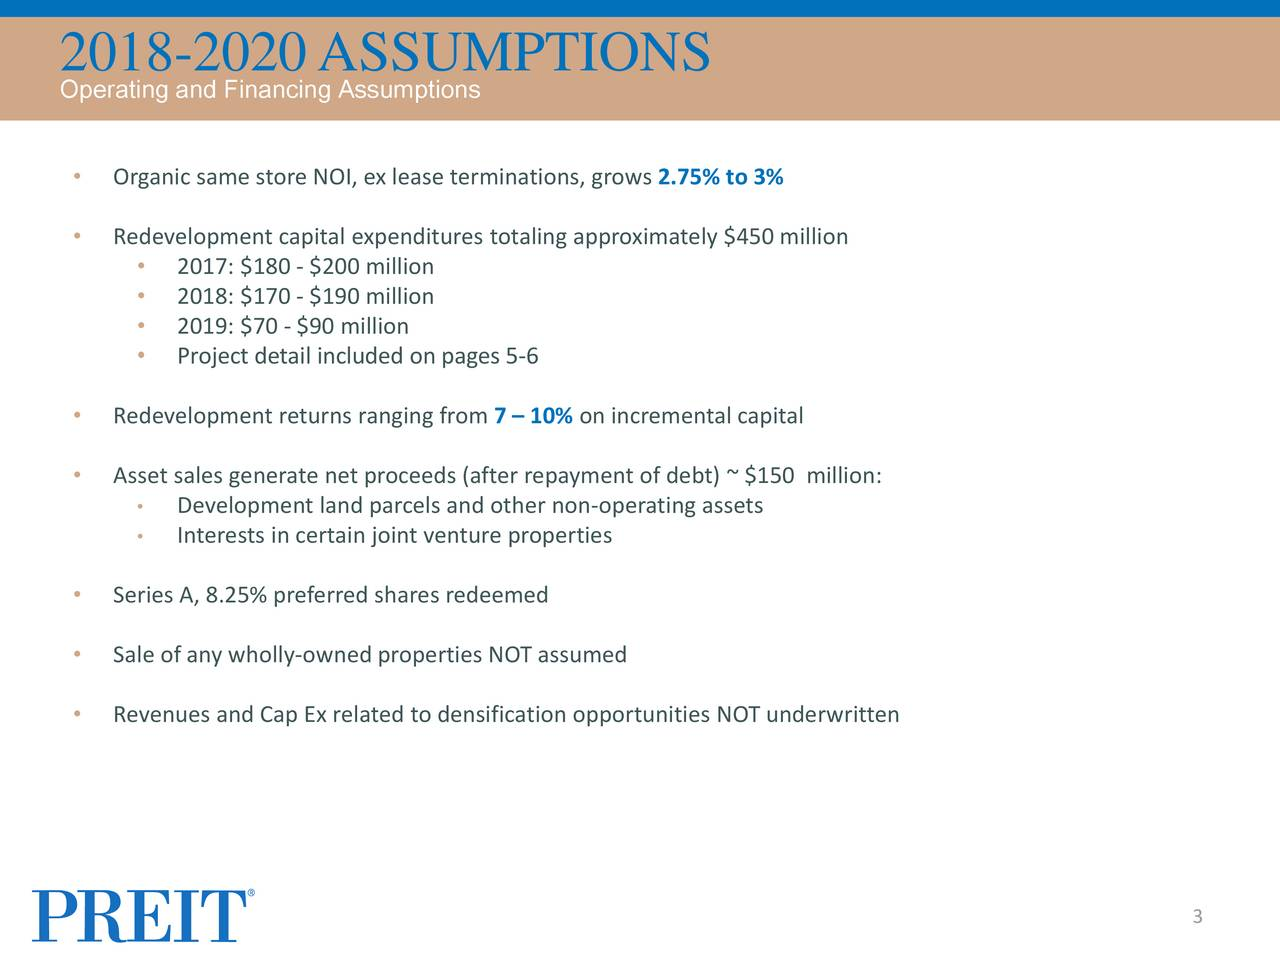 Operating and Financing Assumptions Organic same store NOI, ex lease terminations, grows 2.75% to 3% Redevelopment capital expenditures totaling approximately $450 million 2017: $180 - $200 million 2018: $170 - $190 million 2019: $70 - $90 million Project detail included on pages 5-6 Redevelopment returns ranging from 7  10% on incremental capital Asset sales generate net proceeds (after repayment of debt) ~ $150 million: Development land parcels and other non-operating assets Interests in certain joint venture properties Series A, 8.25% preferred shares redeemed Sale of any wholly-owned properties NOT assumed Revenues and Cap Ex related to densification opportunities NOT underwritten 3